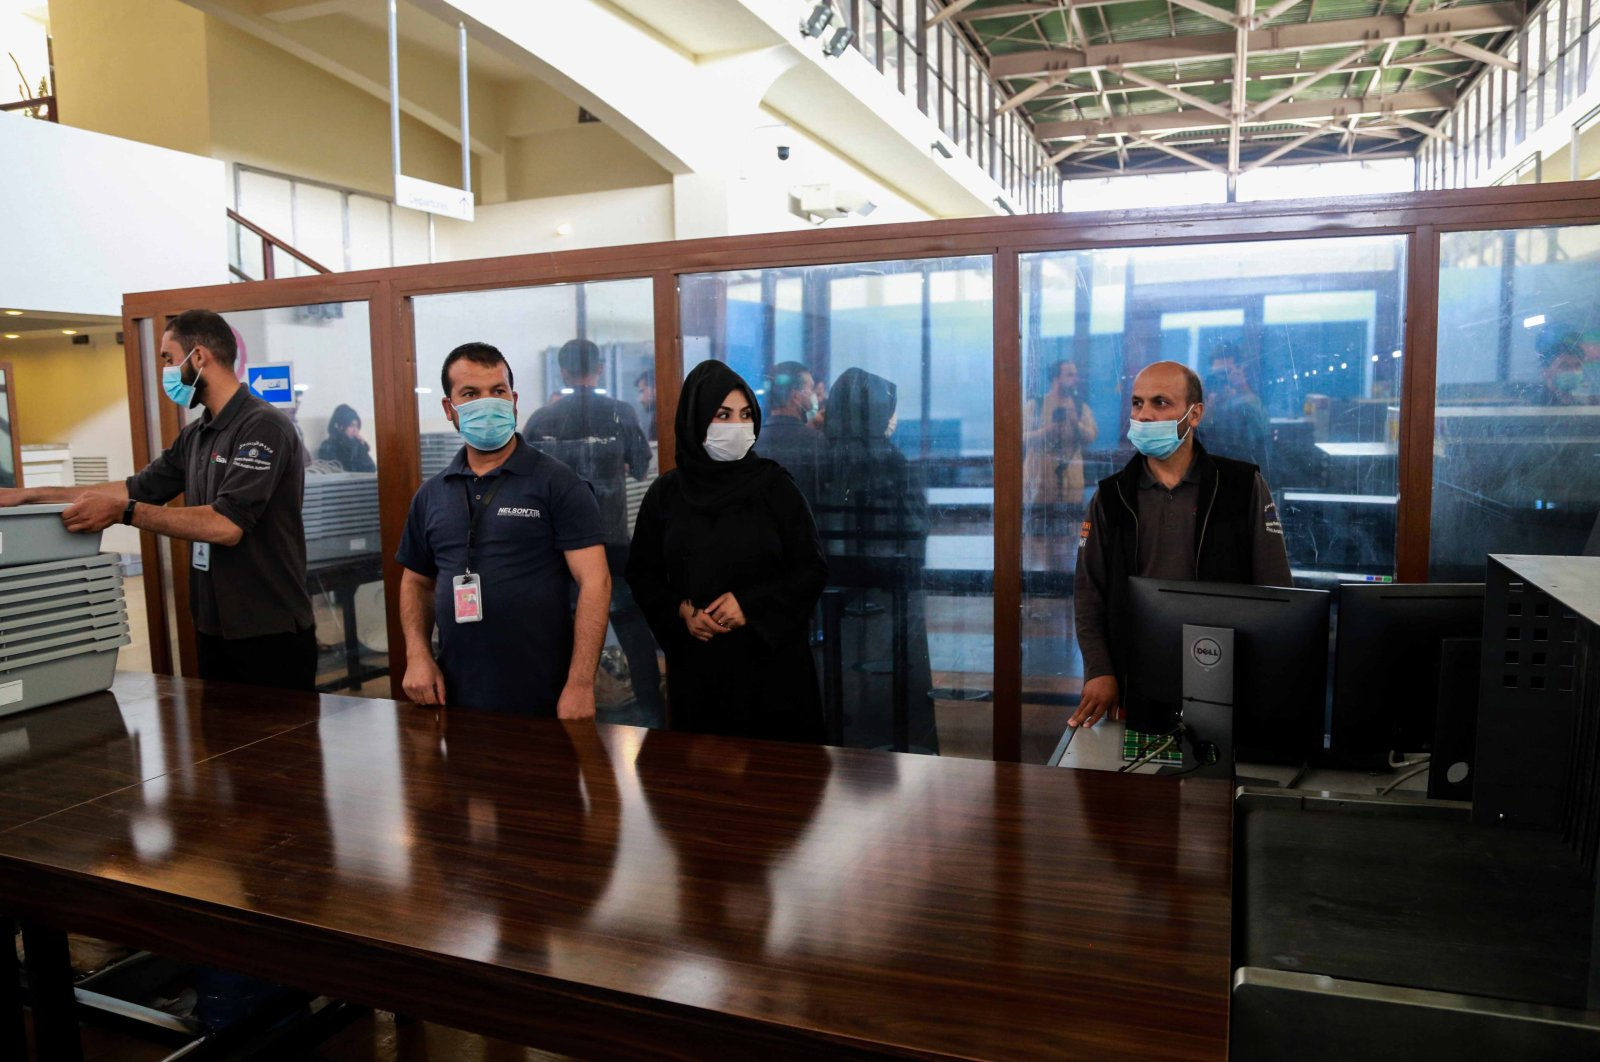 Afghan airport staff work at the security check at Hamid Karzai International Airport in Kabul, Afghanistan, Sept. 13, 2021. (EPA Photo)